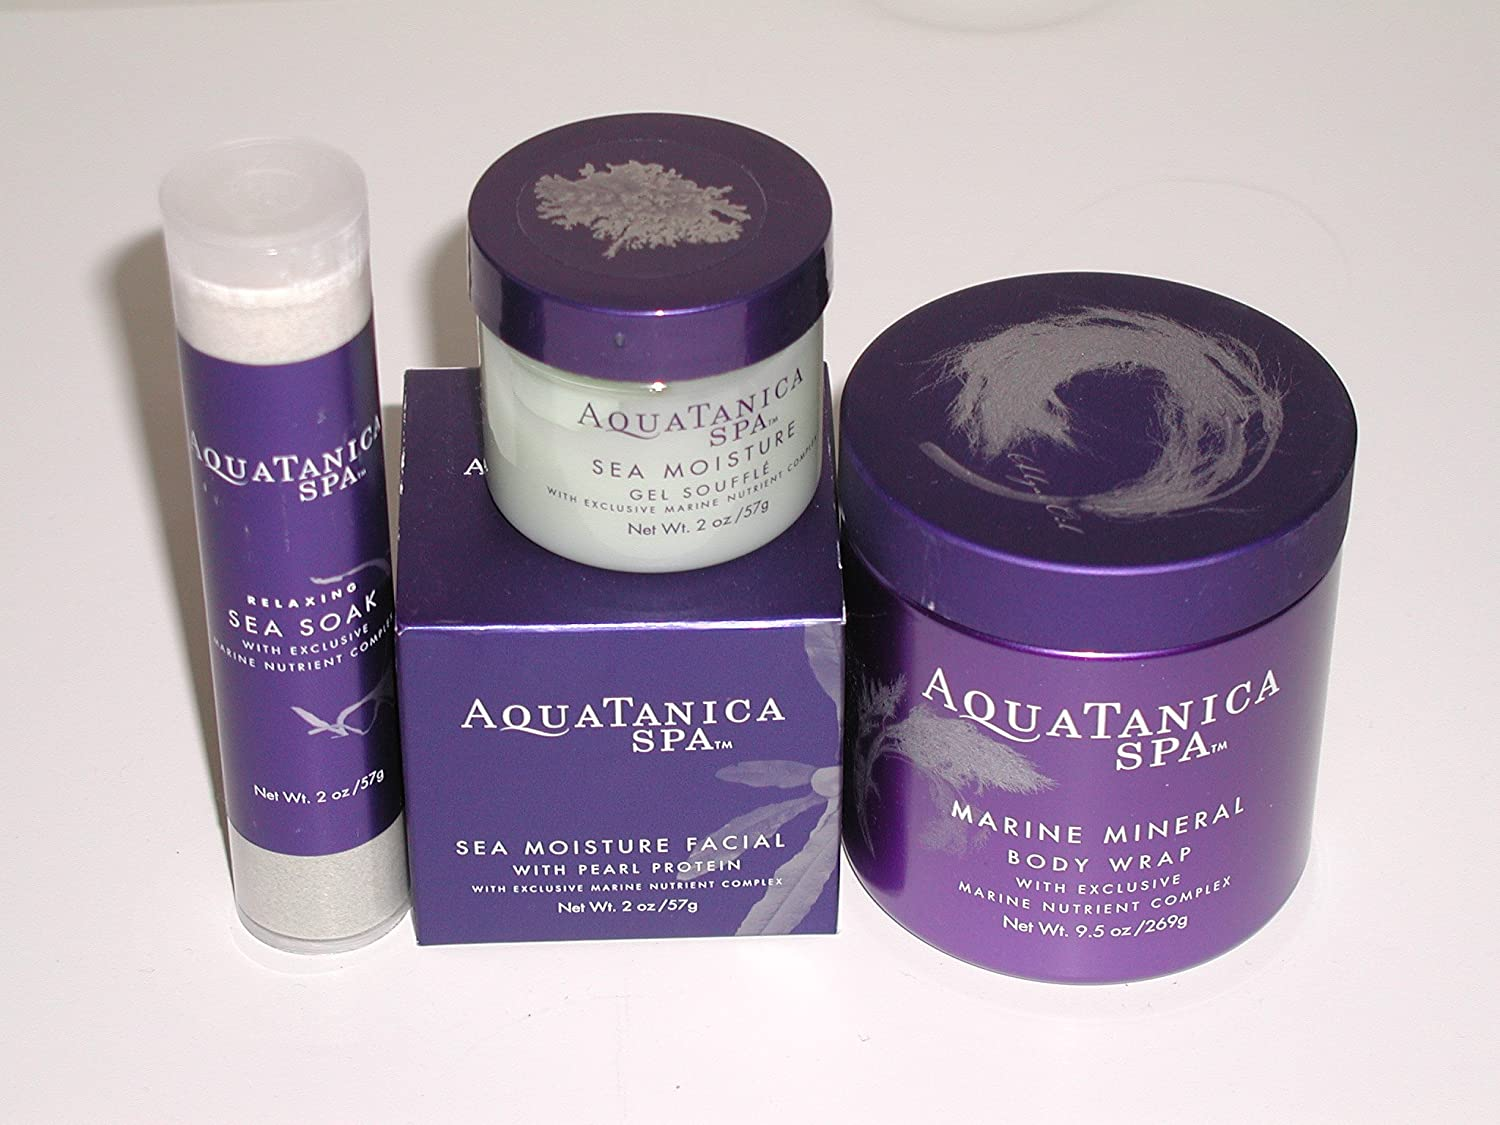 See you've Aquatanica sea moisture facial girls! WONDER